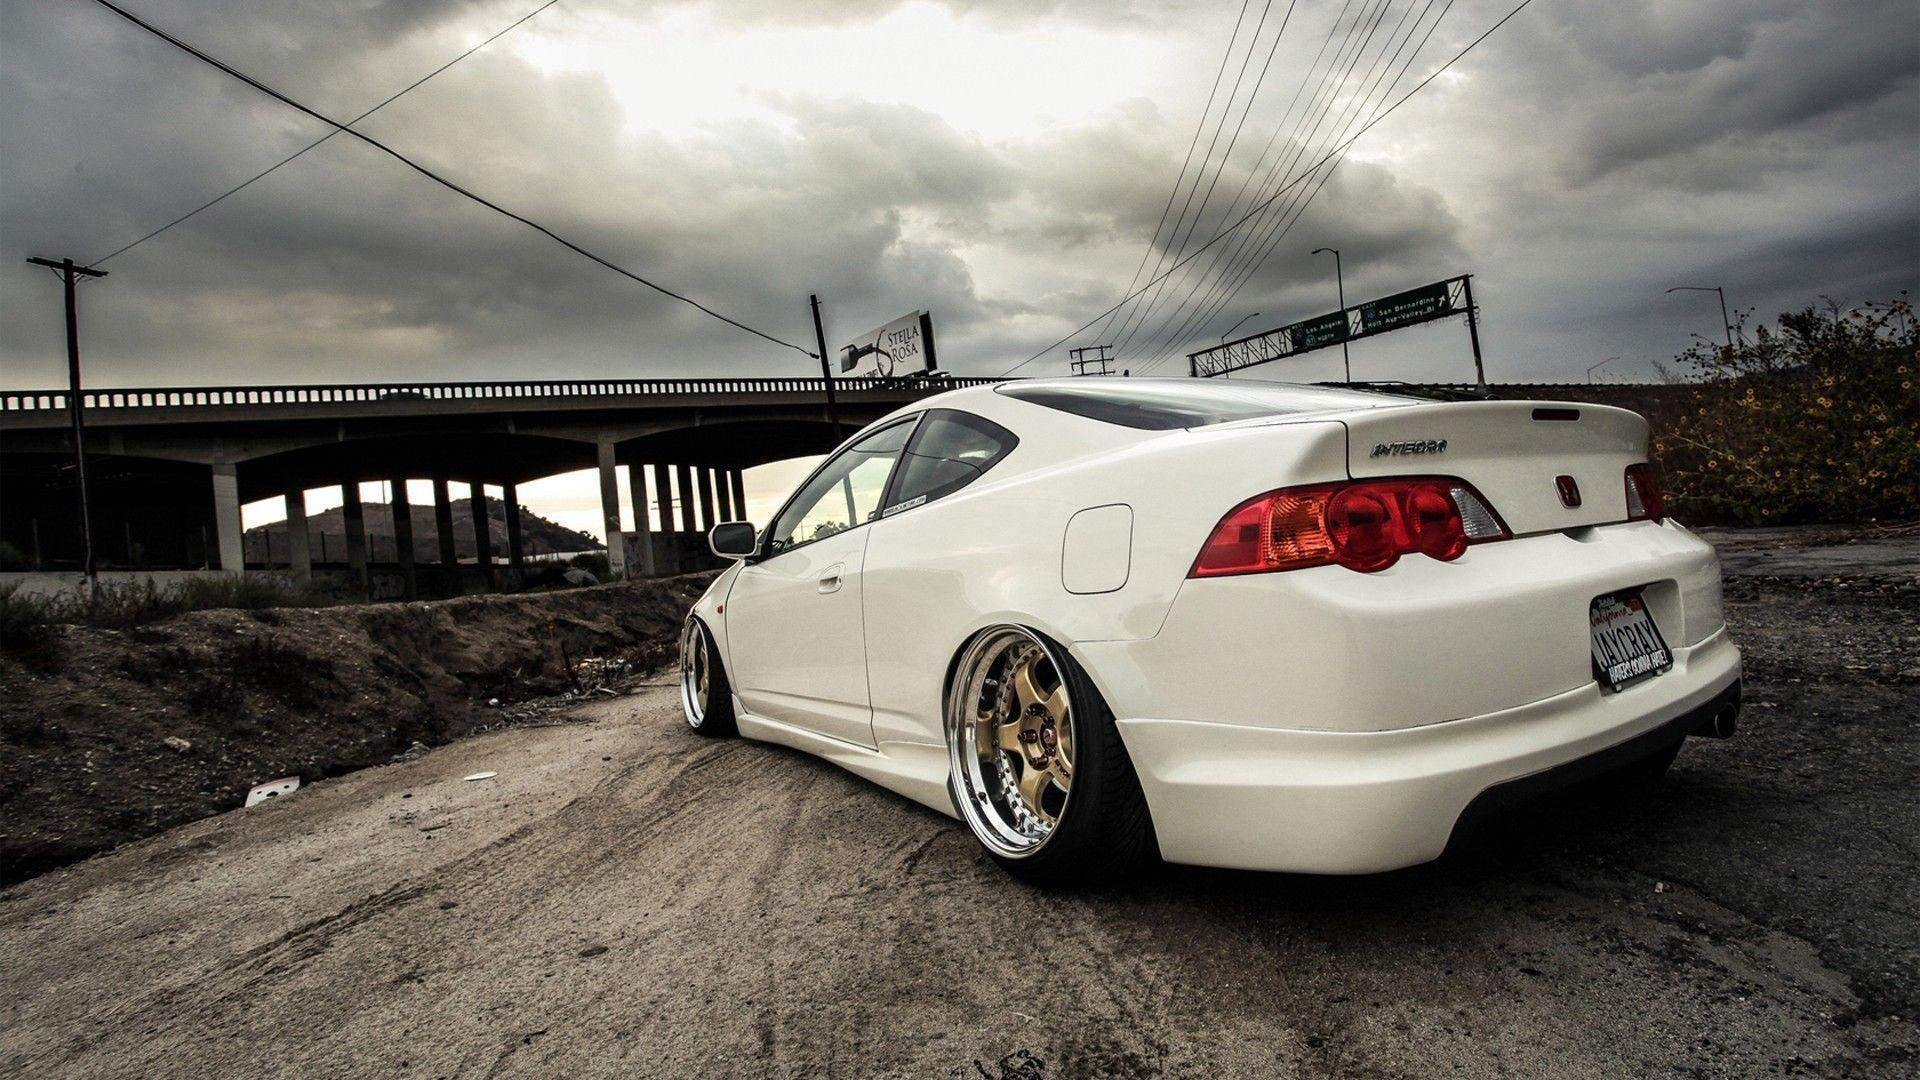 Wallpapers honda, acura rsx, car, auto, bridge, road